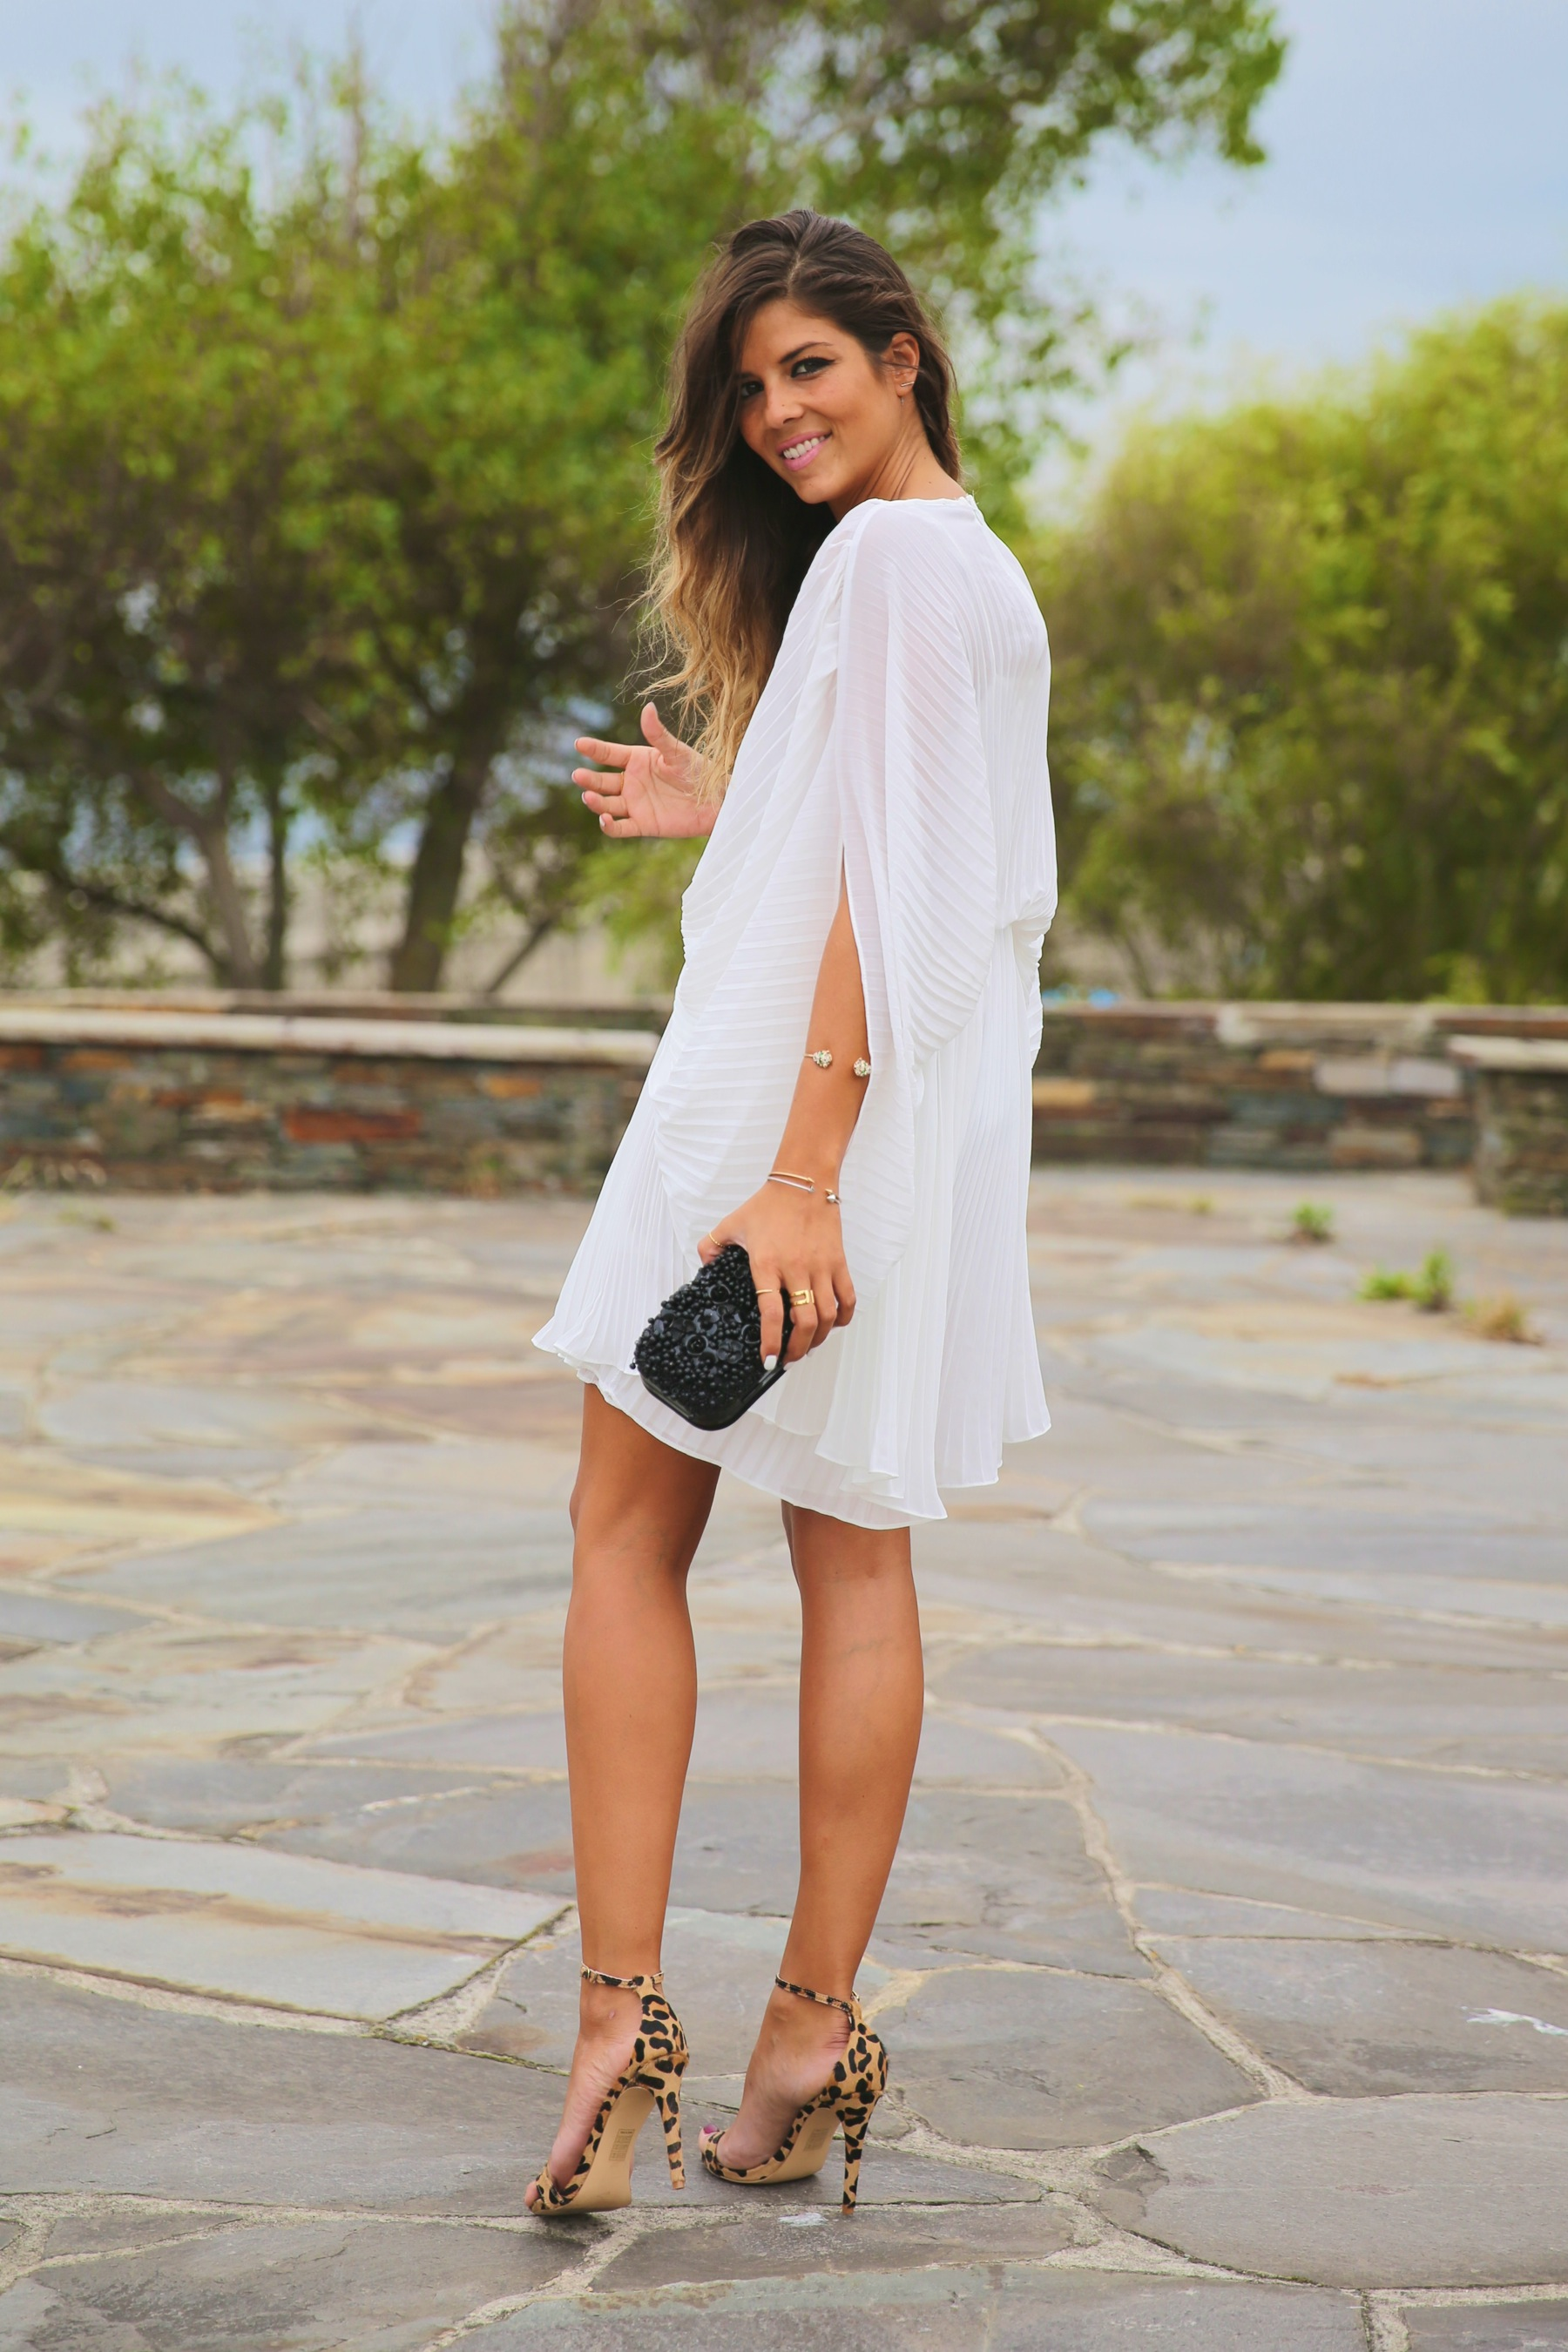 trendy_taste-look-outfit-street_style-fashion_spain-moda_españa-blog-blogger-vestido_blanco-white_dress-müic-jewels-joyas-leo_sandals-sandalias_leopardo-clutch_pedreria-13